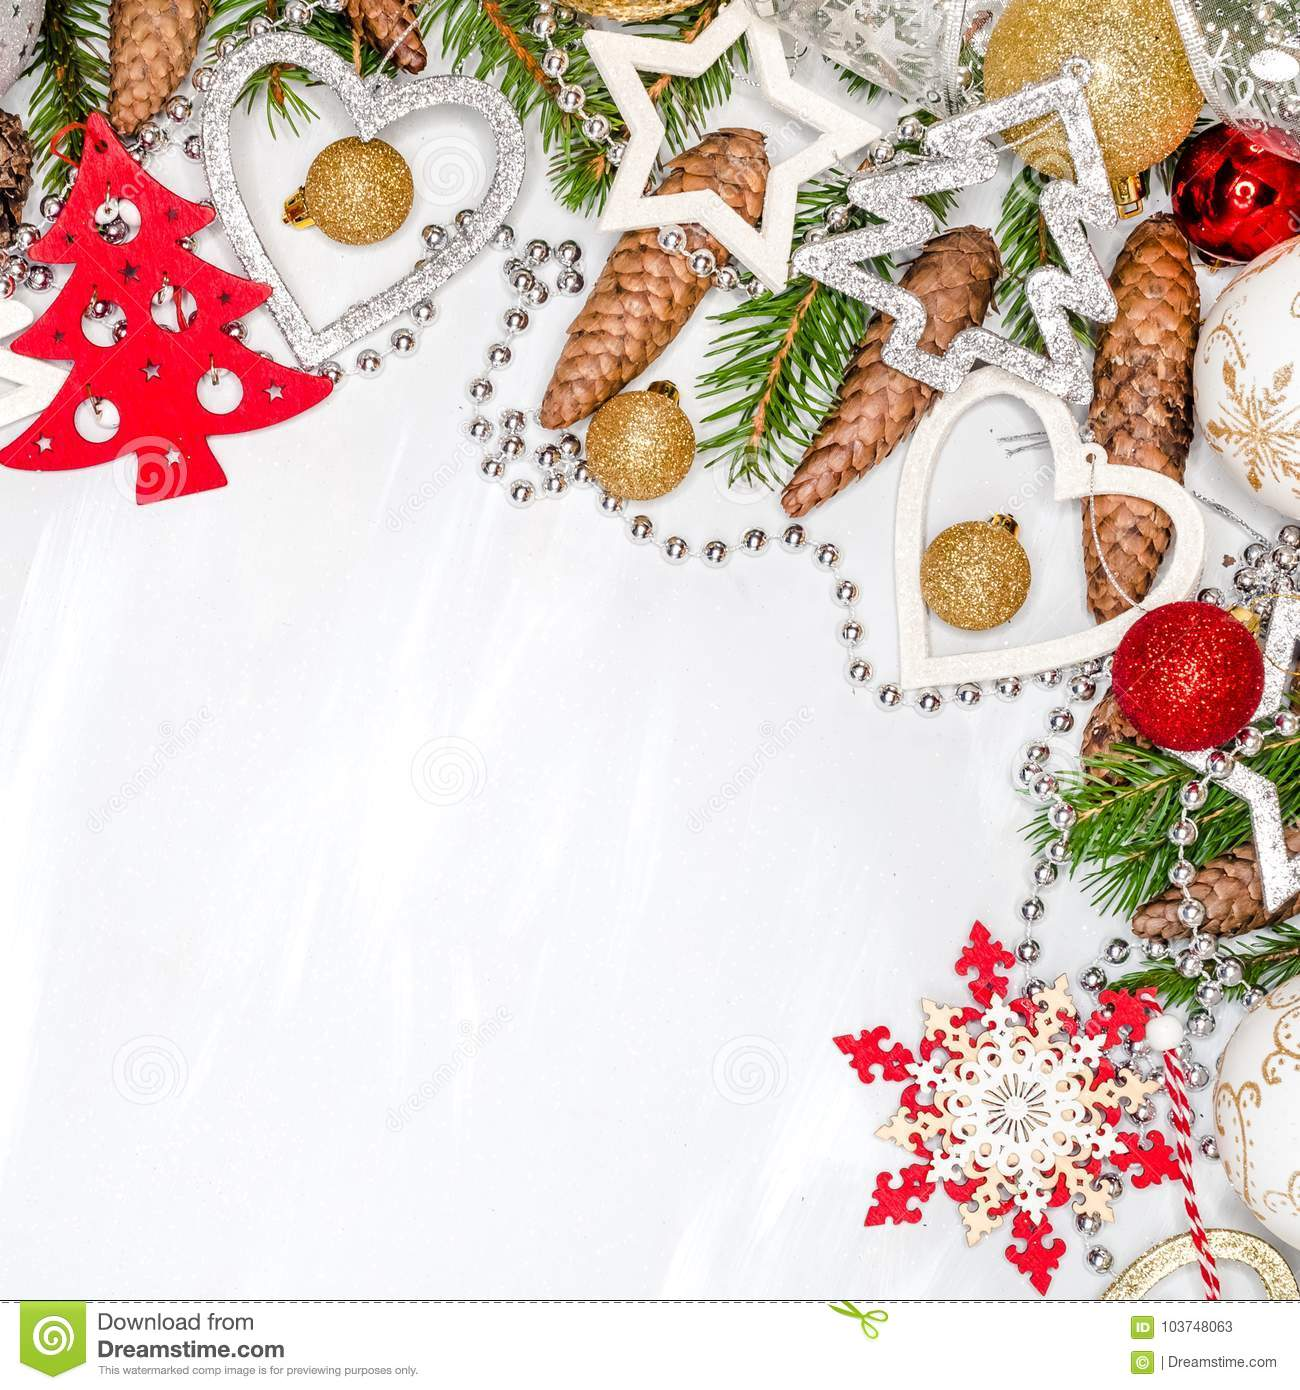 Christmas celebration still life with free space for text, on white background